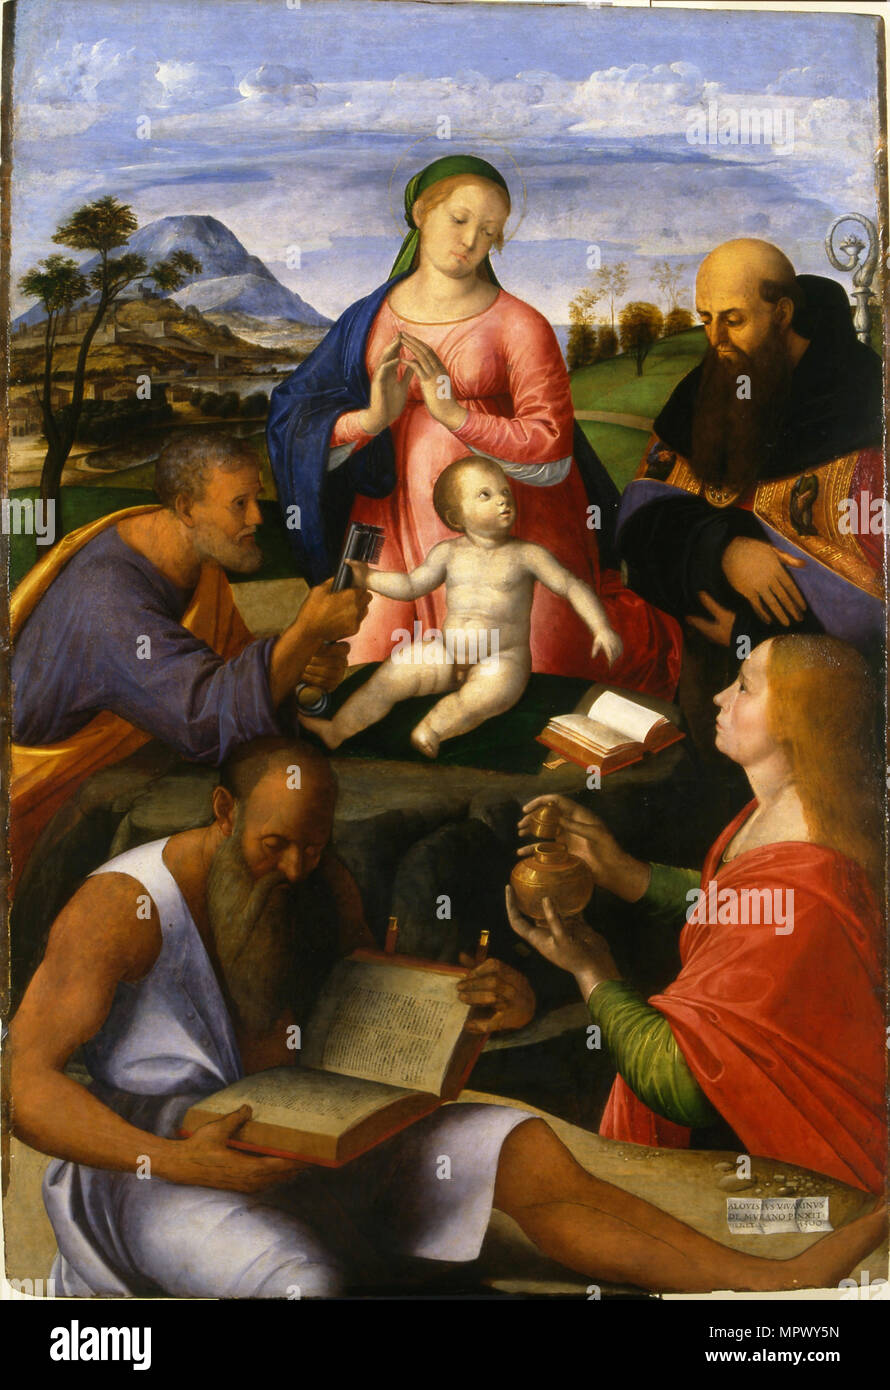 The Virgin and Child with Saints  , 1500. - Stock Image